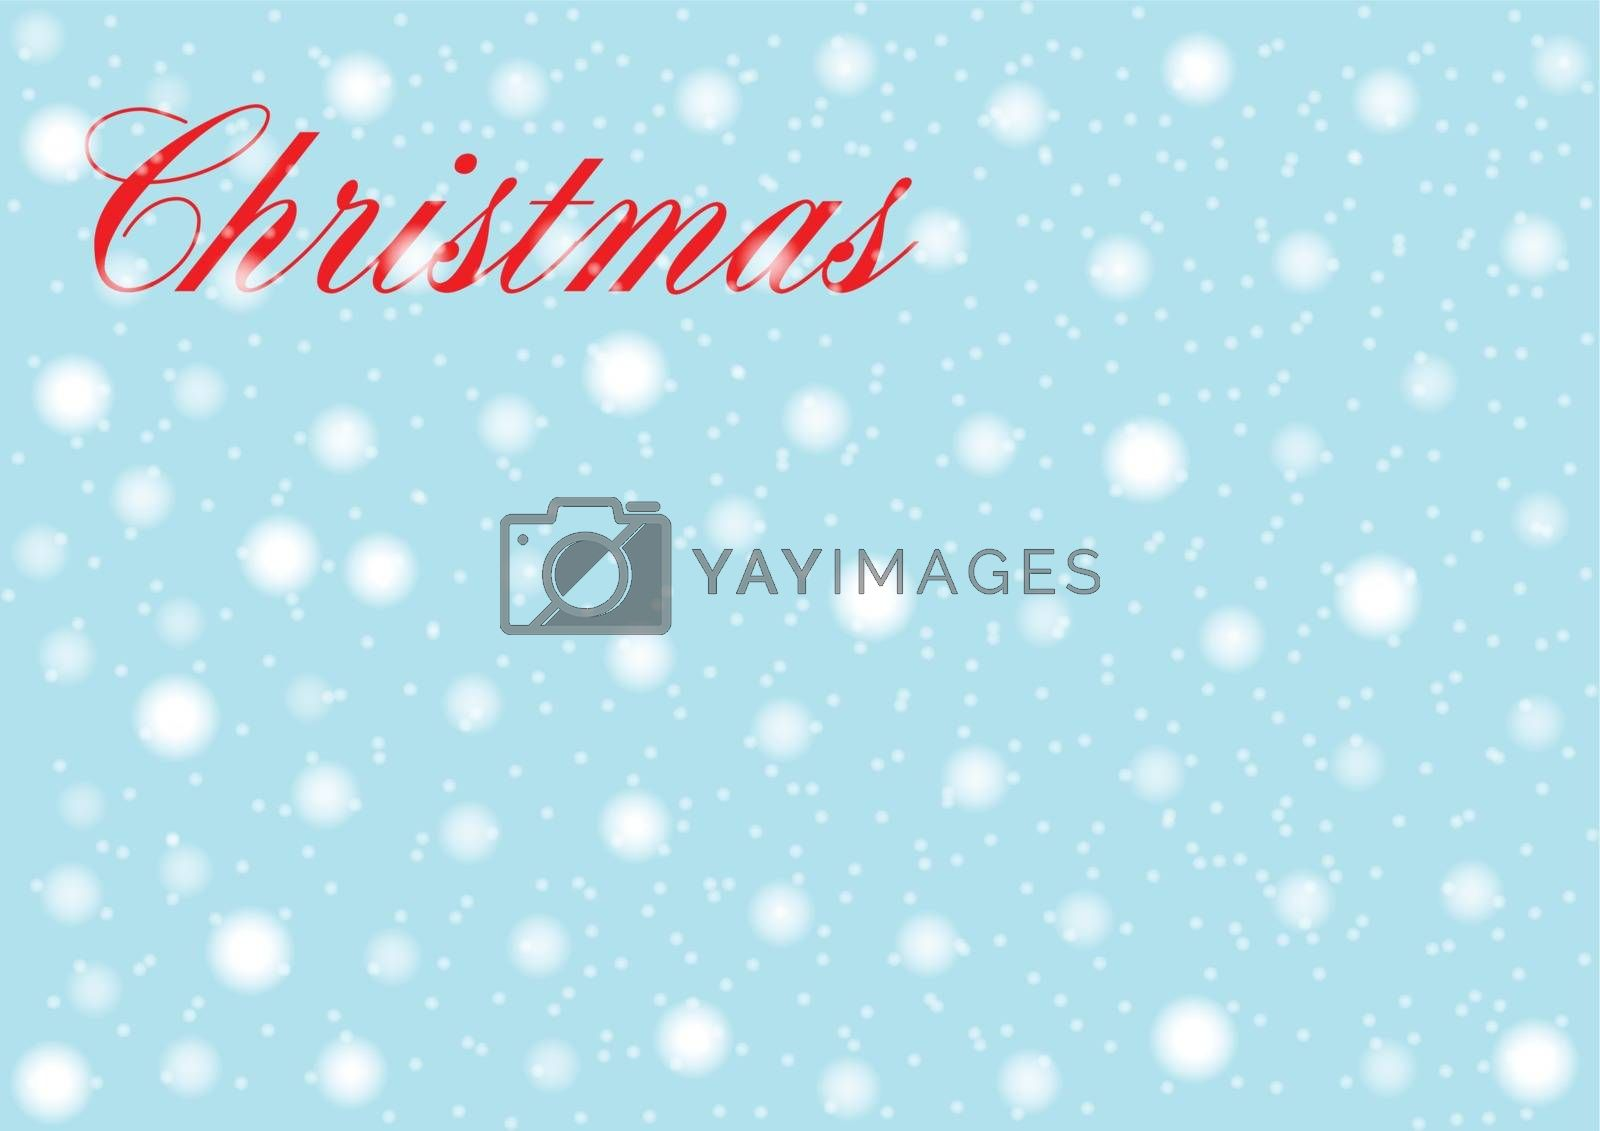 Christmas text against a falling snow background